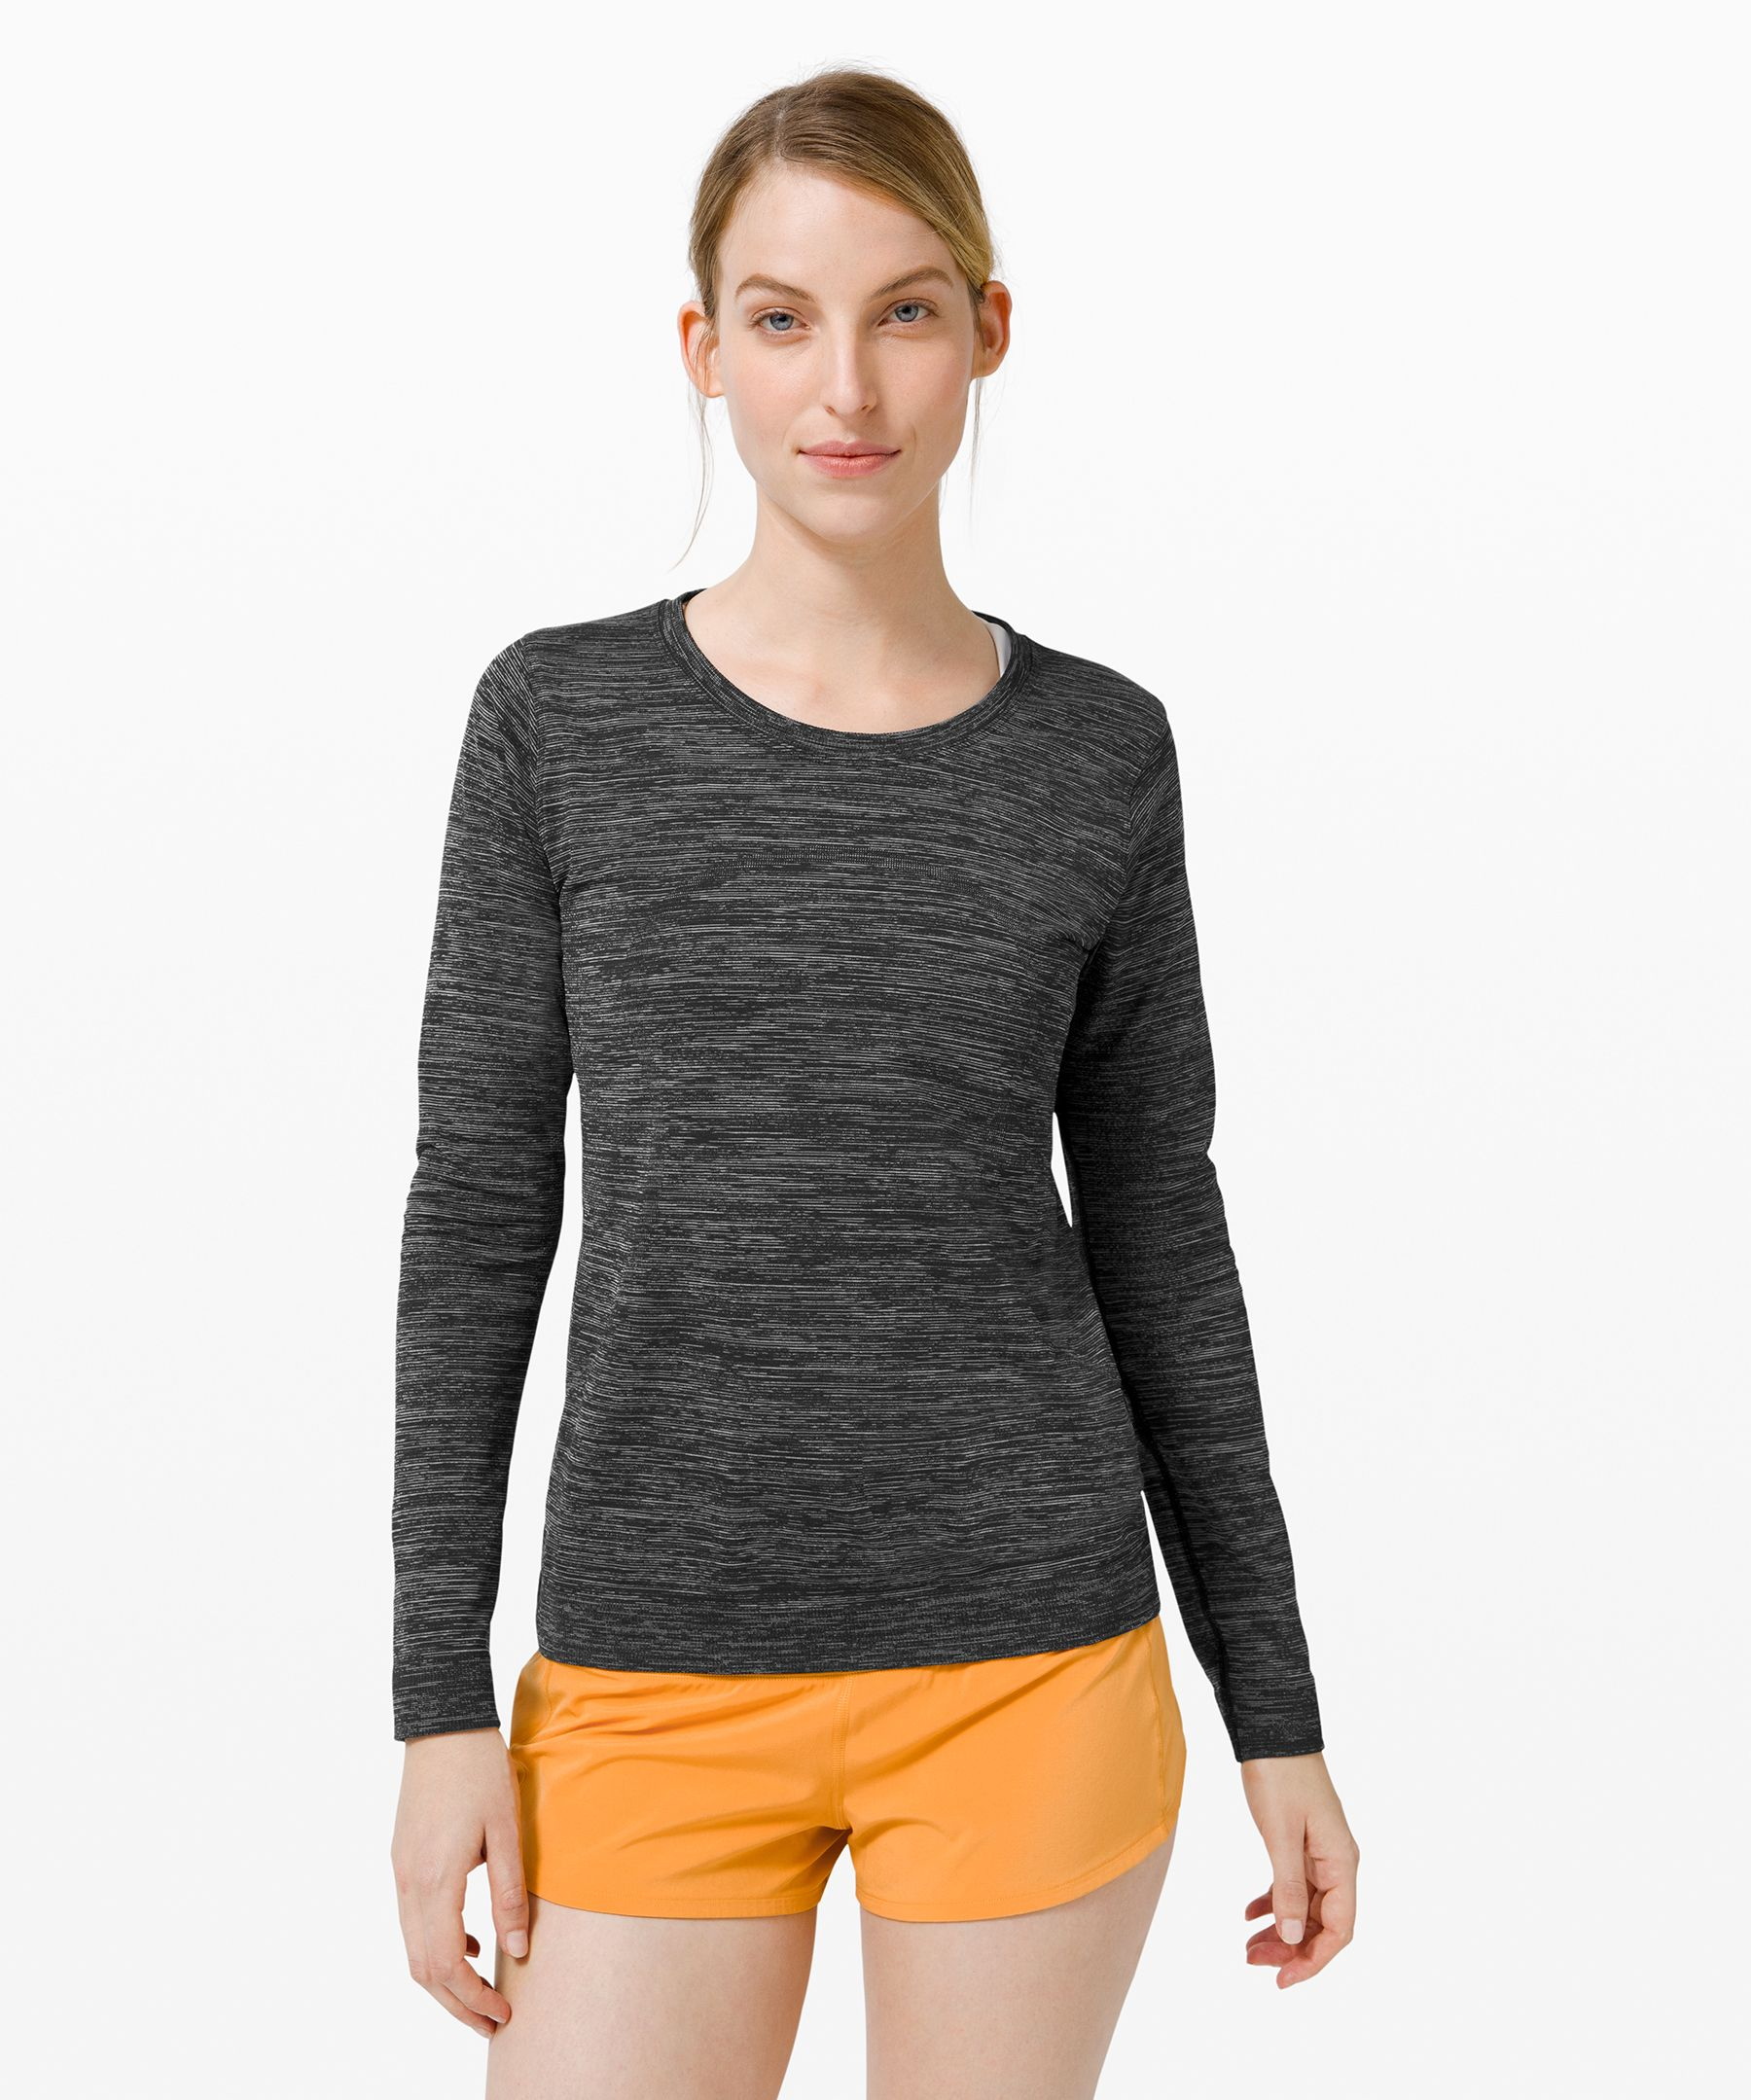 Whether you\\\'re running or  training, this anti-stink long  sleeve gives you the  lightweight, breathable  coverage you need.